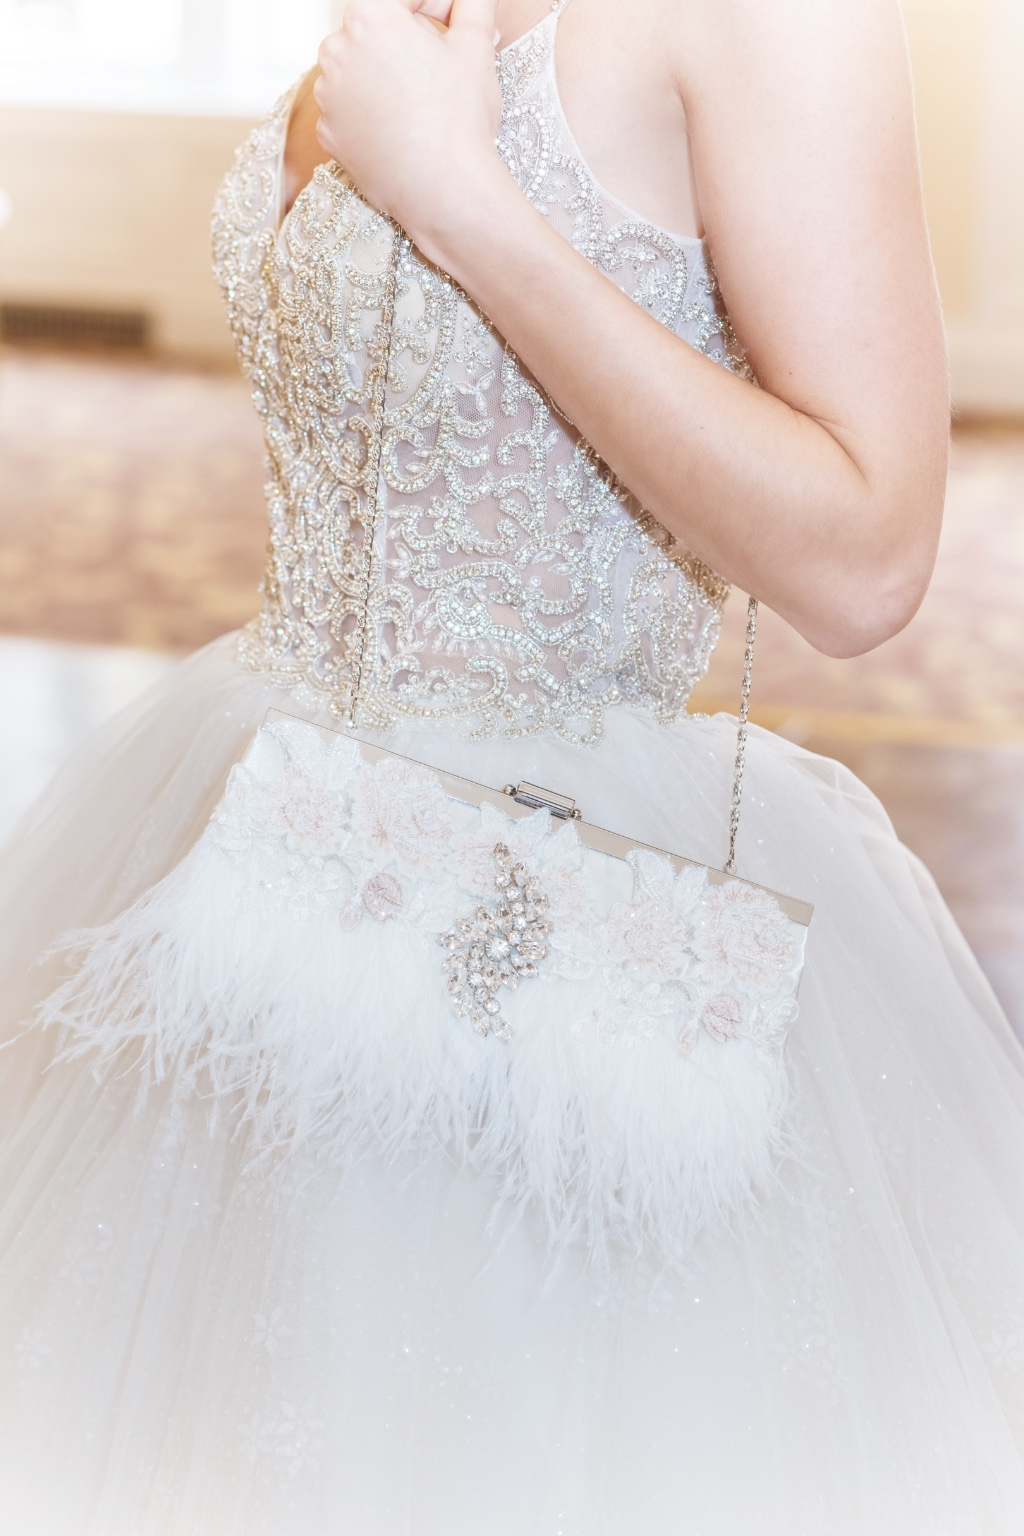 Details that finish your bridal look